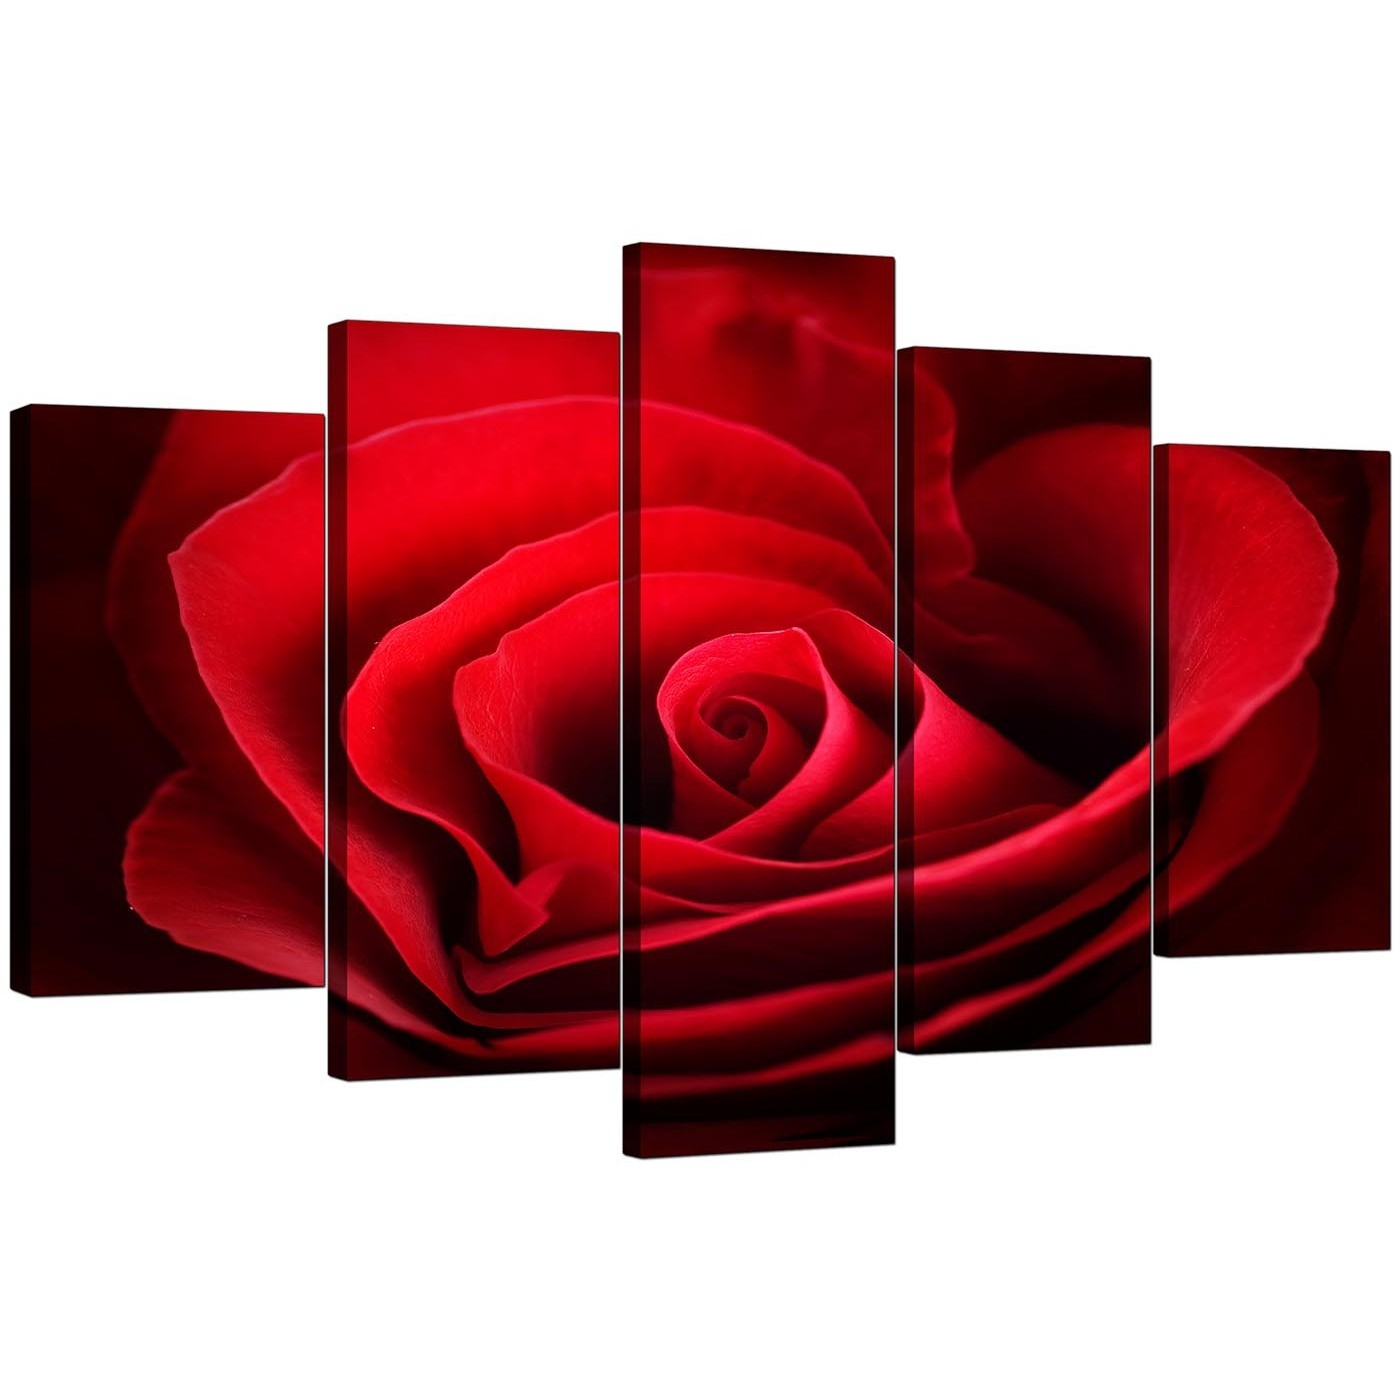 Extra Large Rose Canvas Wall Art 5 Panel In Red Regarding 2018 Red Canvas Wall Art (Gallery 2 of 15)